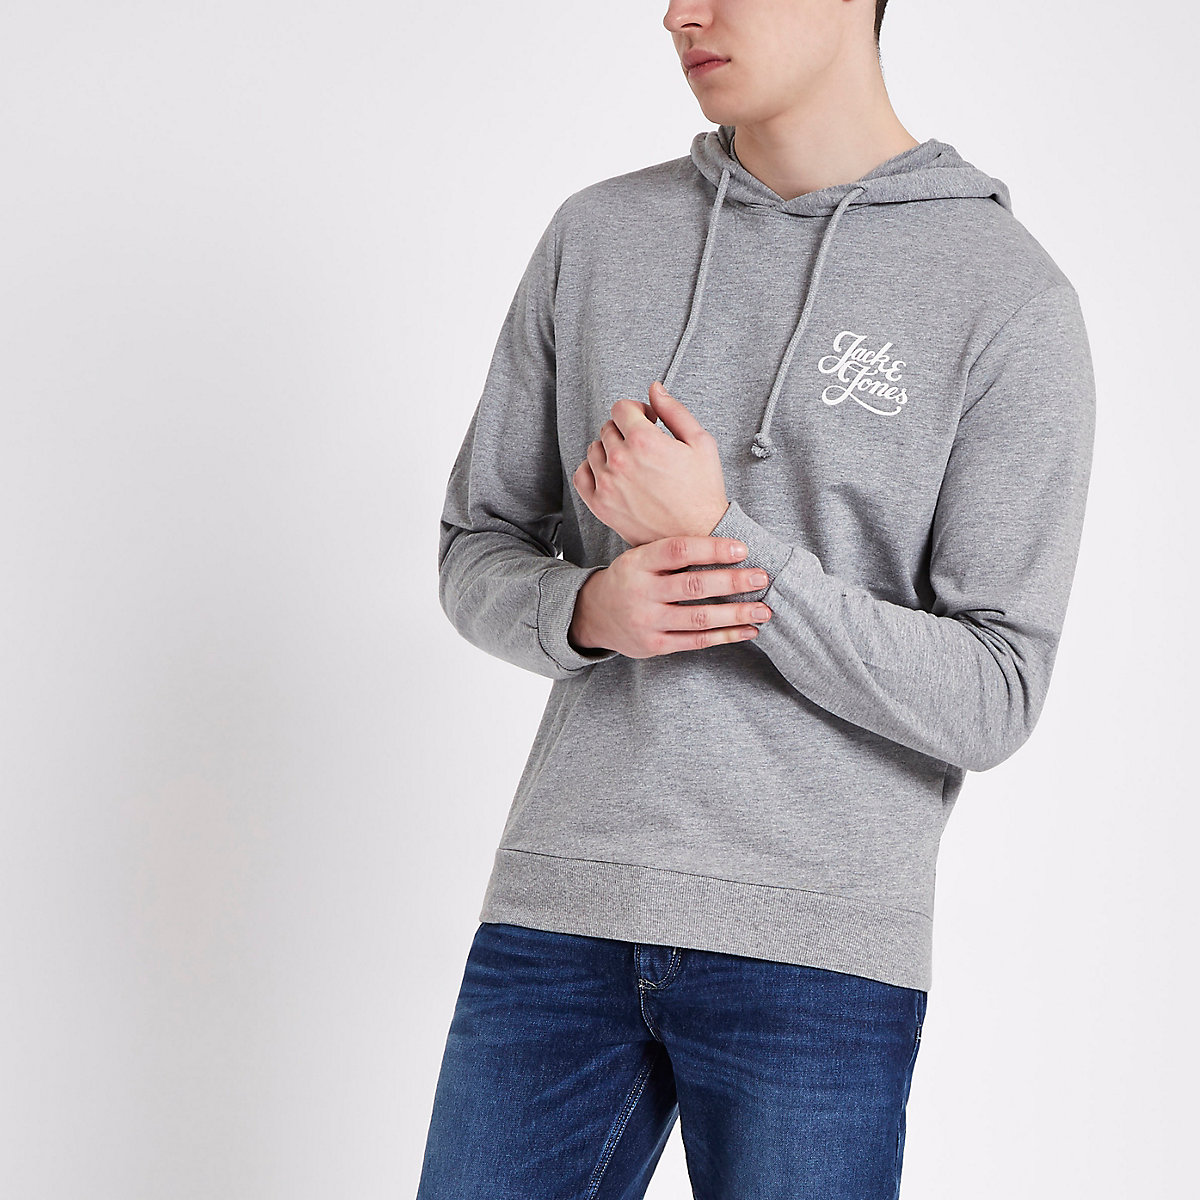 Jack & Jones Originals grey hoodie